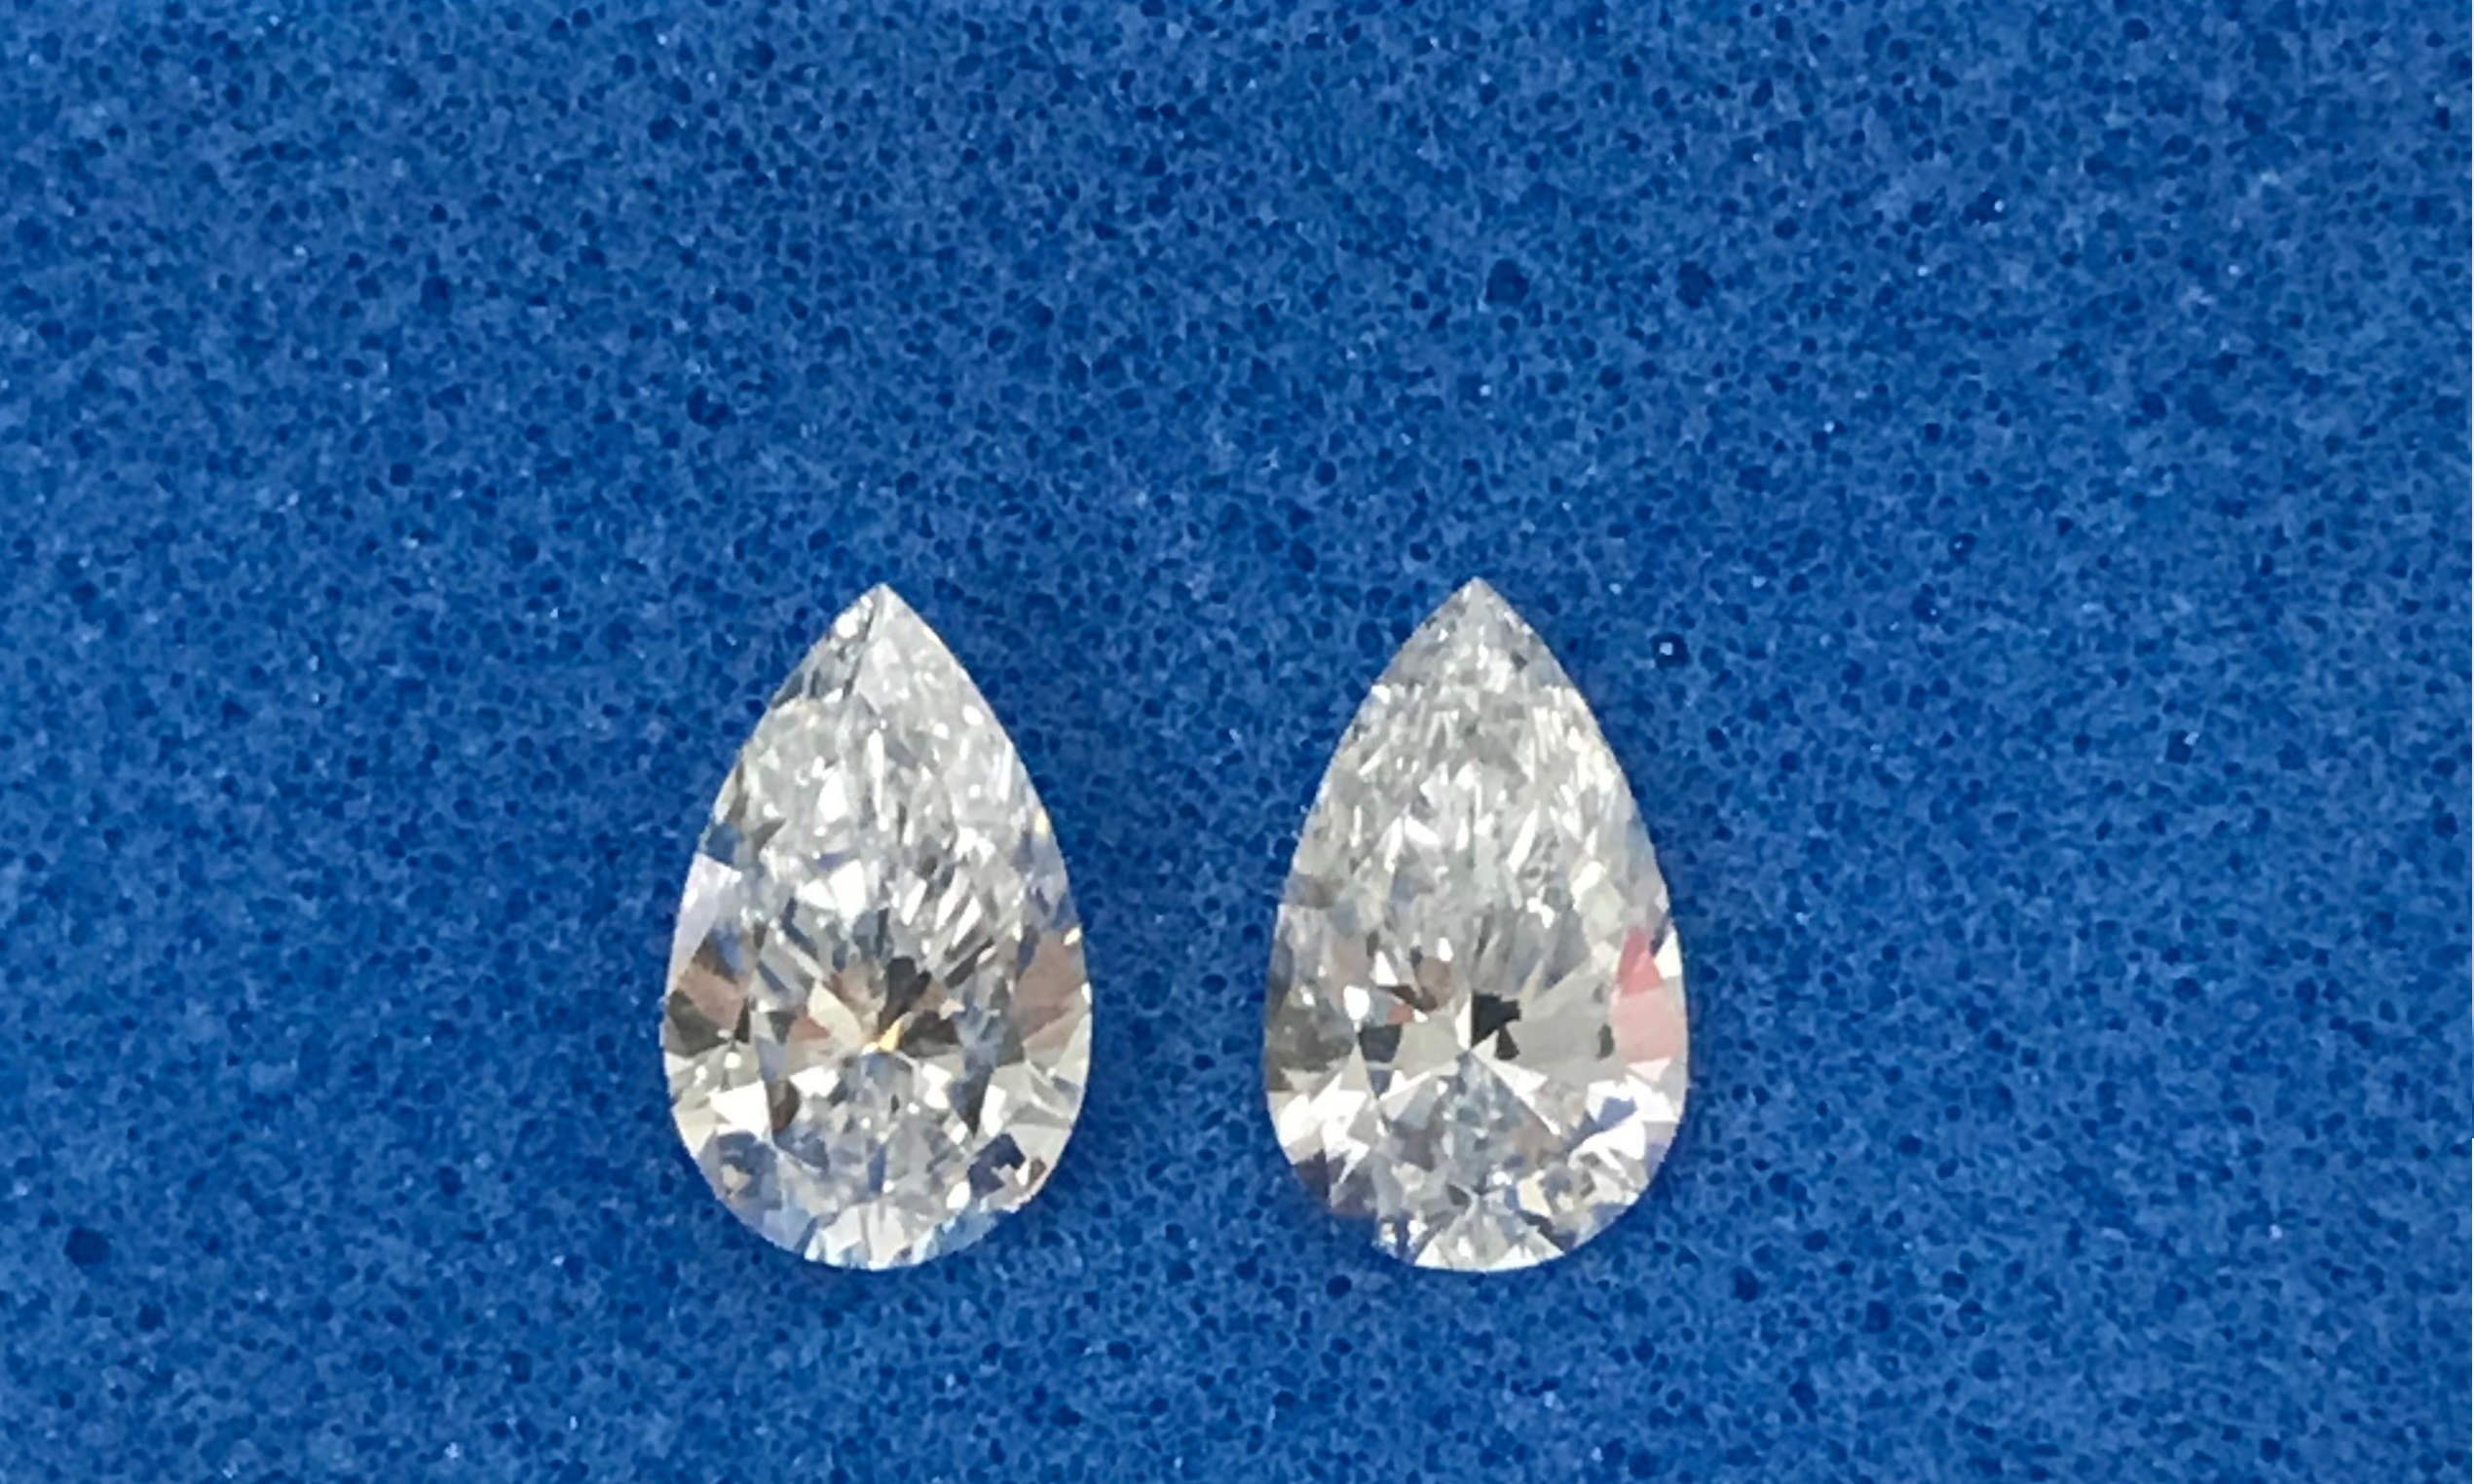 P&A Jewelers - Diamond Image - .00981